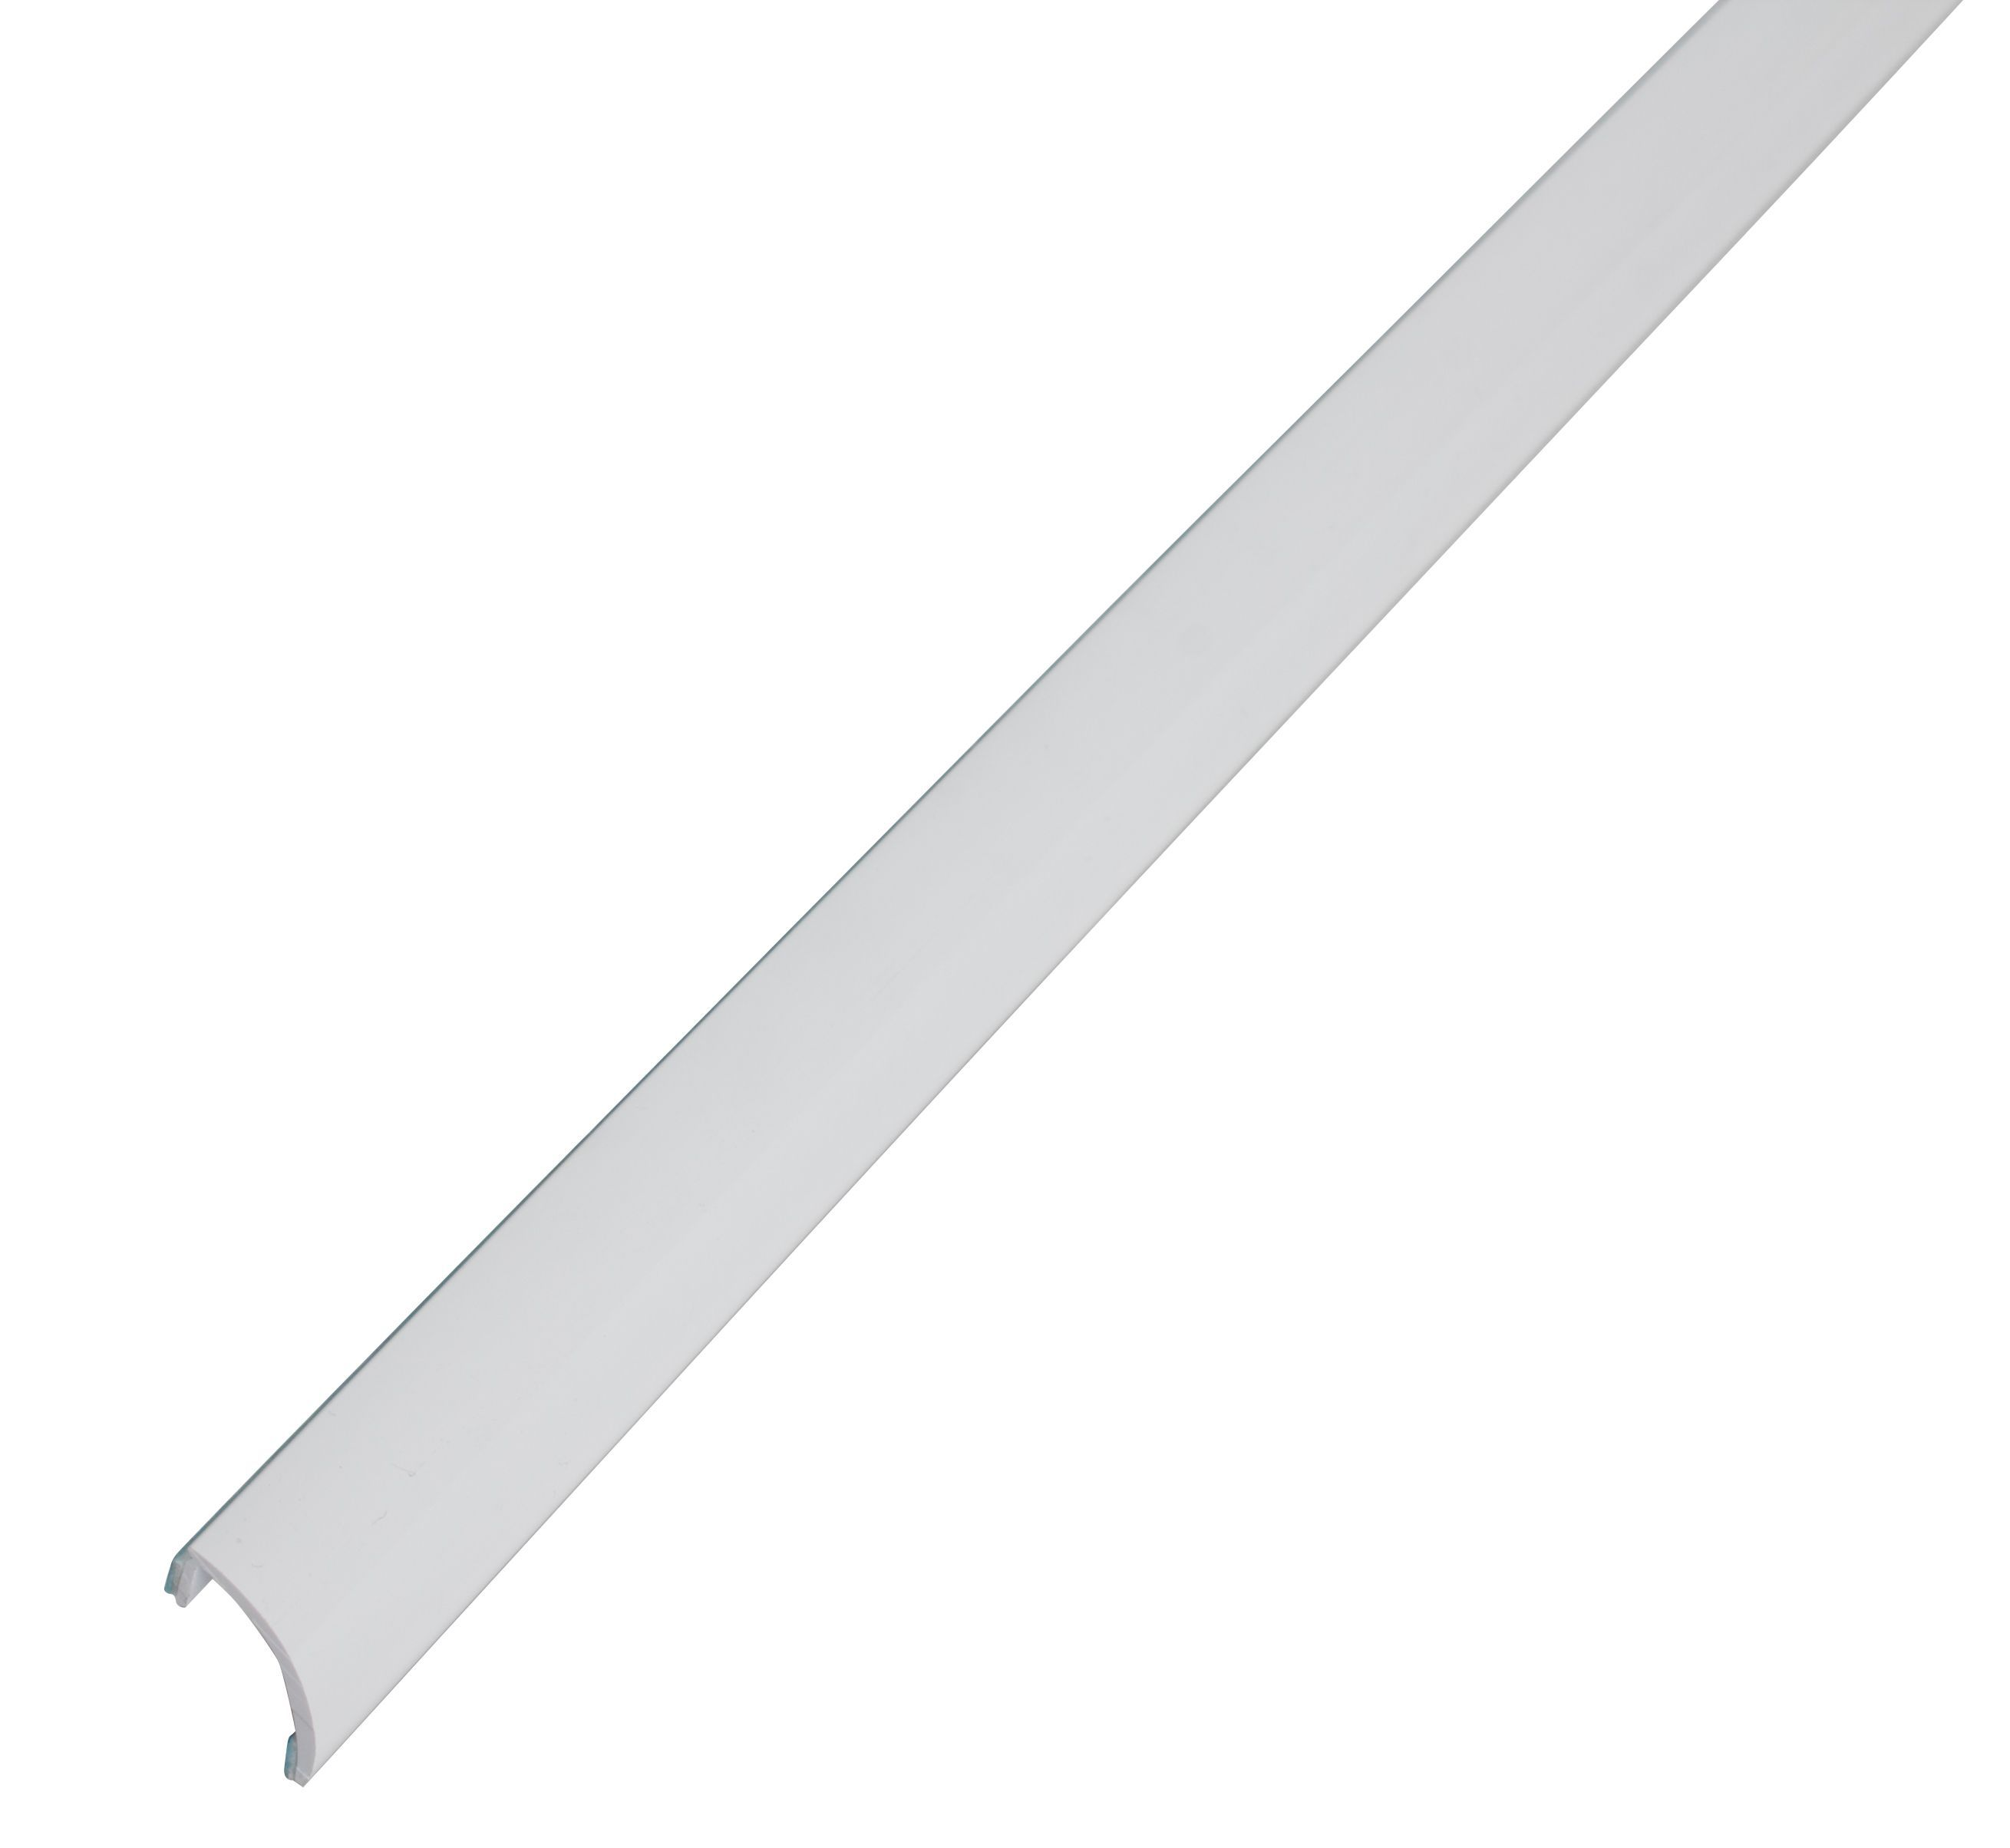 diall white pvc self adhesive curved bath seal trim. Black Bedroom Furniture Sets. Home Design Ideas